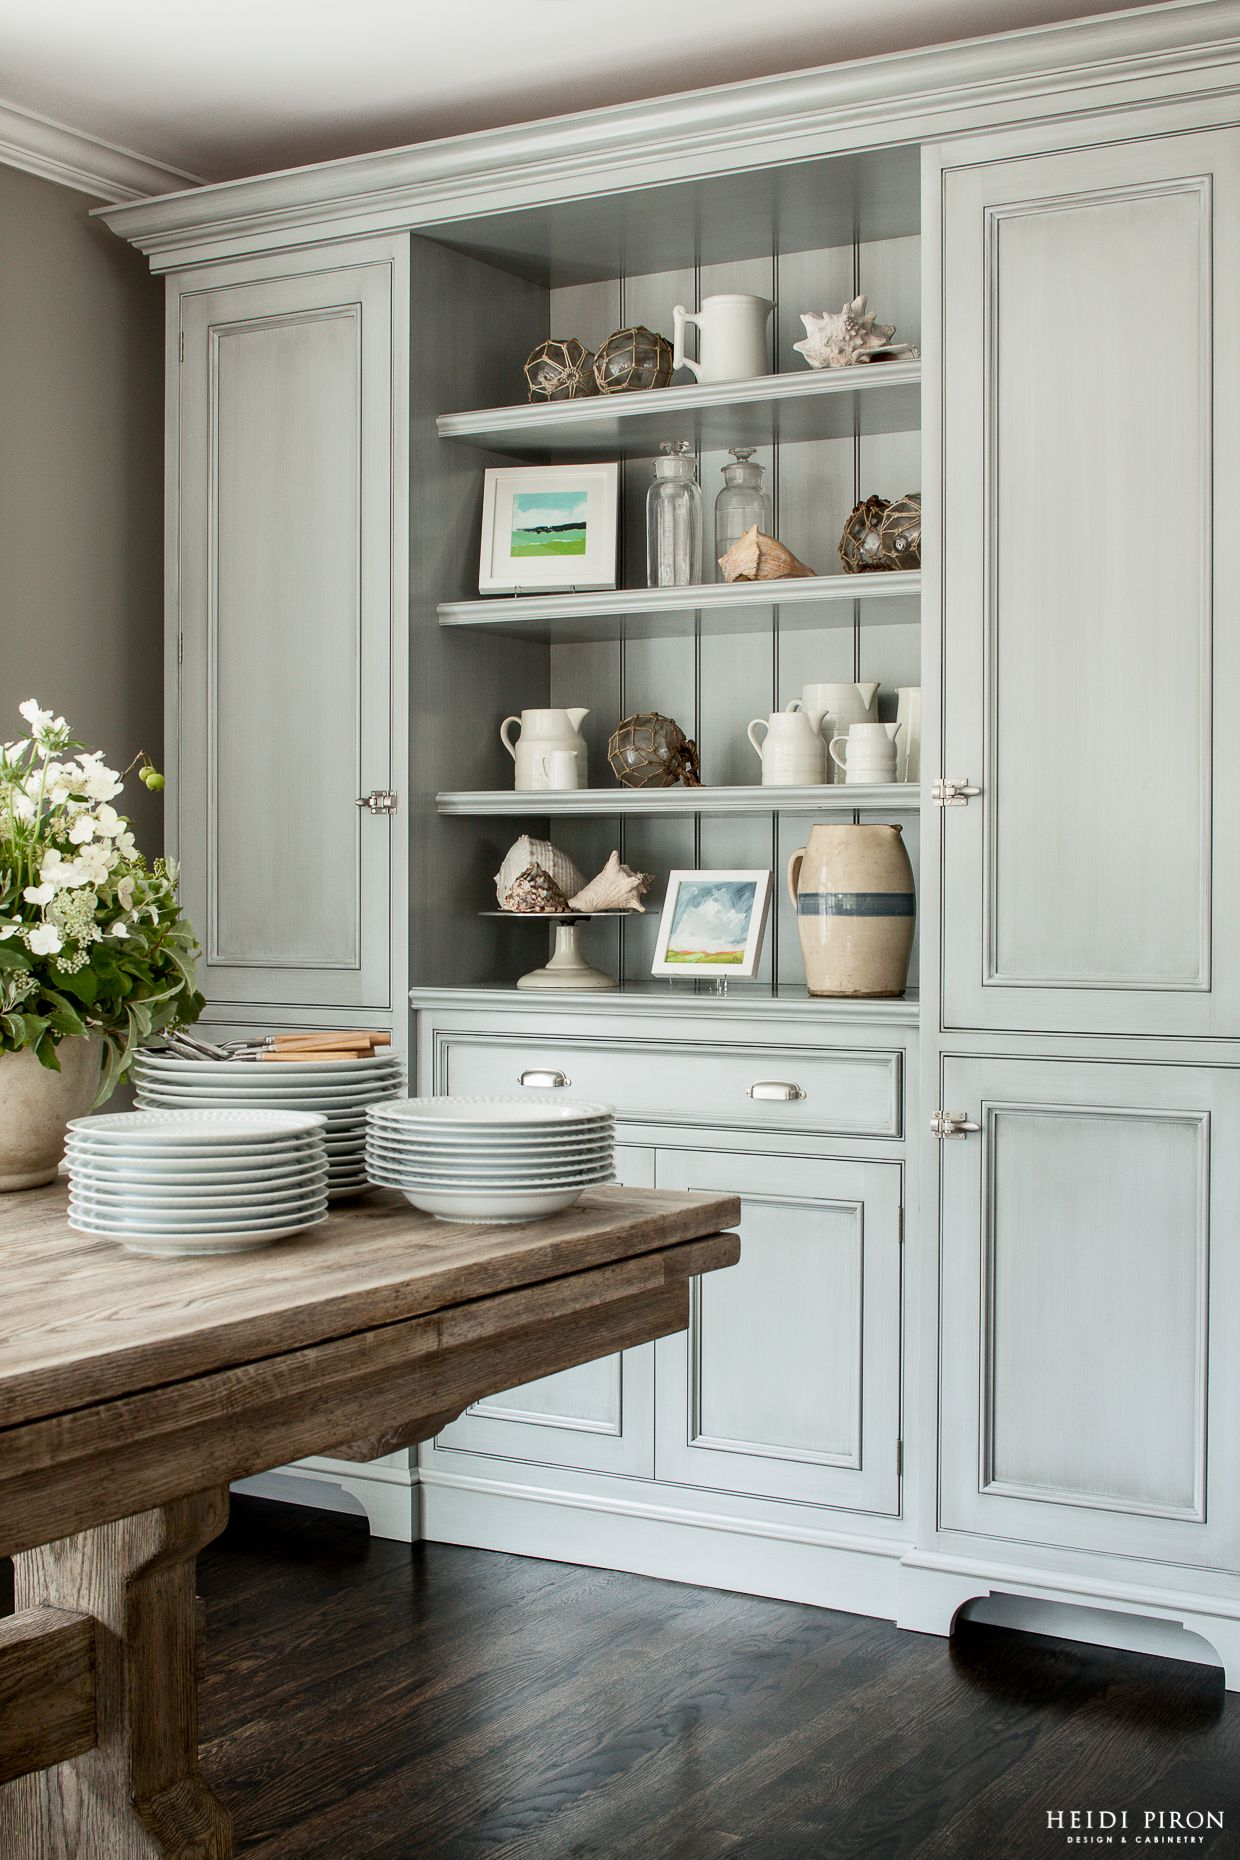 Heidi piron design and cabinetry gorgeous built in kitchen dresser painted a soft antique gray blue